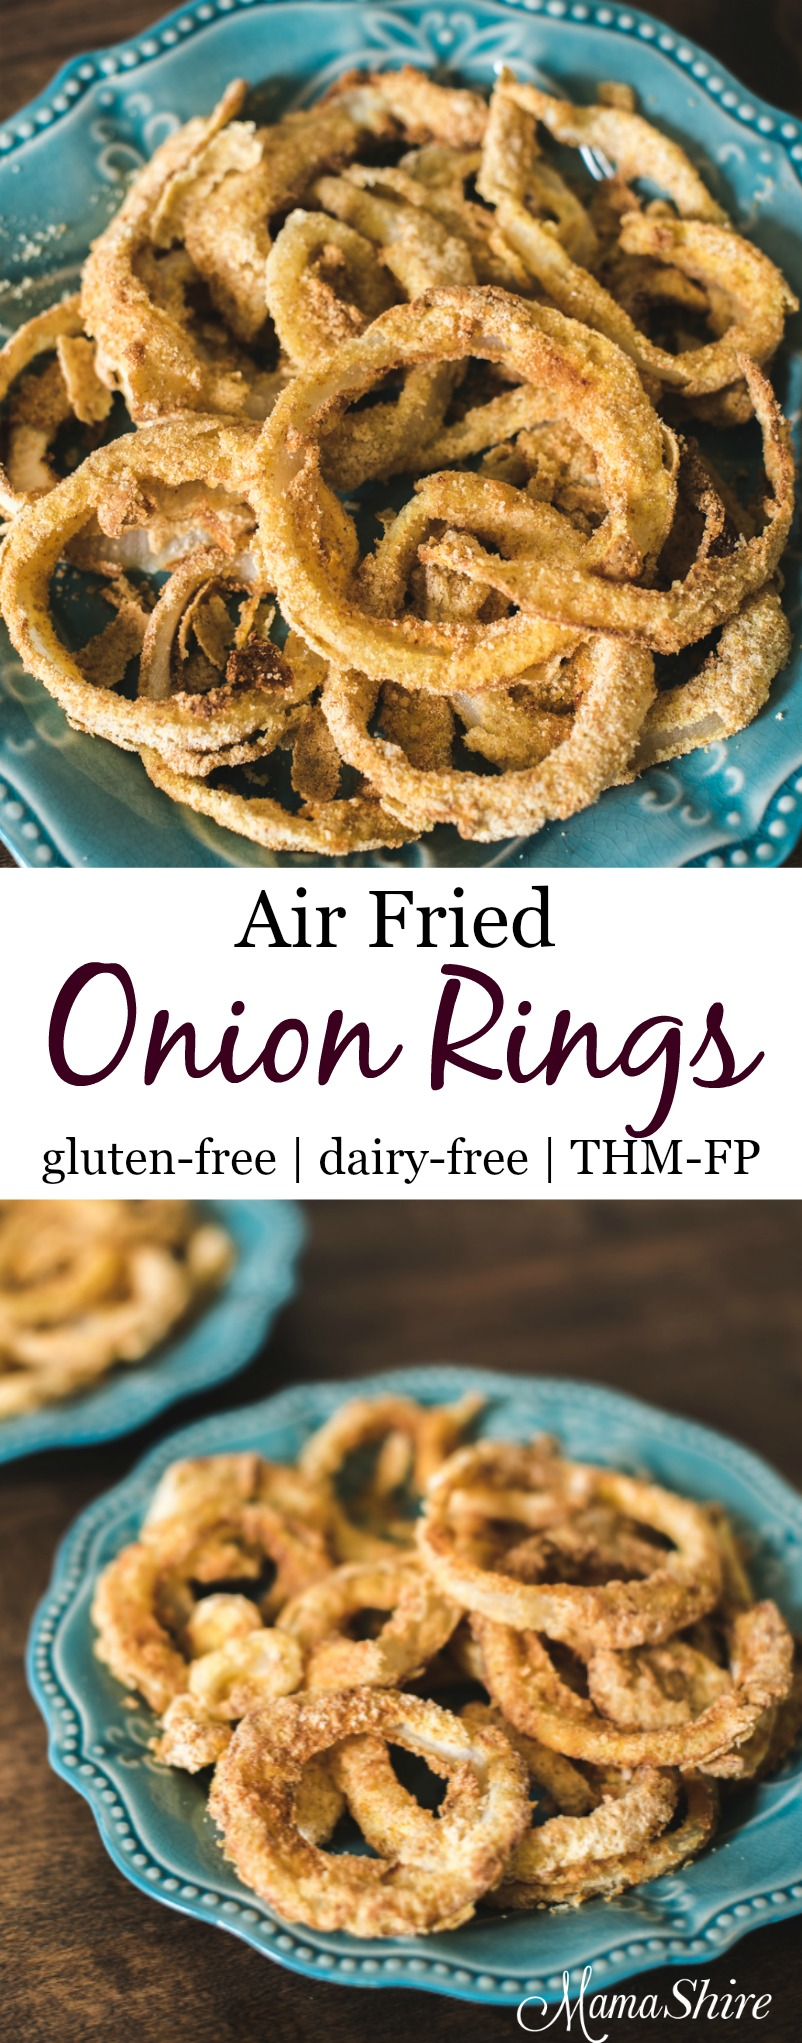 Air Fried Gluten Free Onion Rings - THM-FP